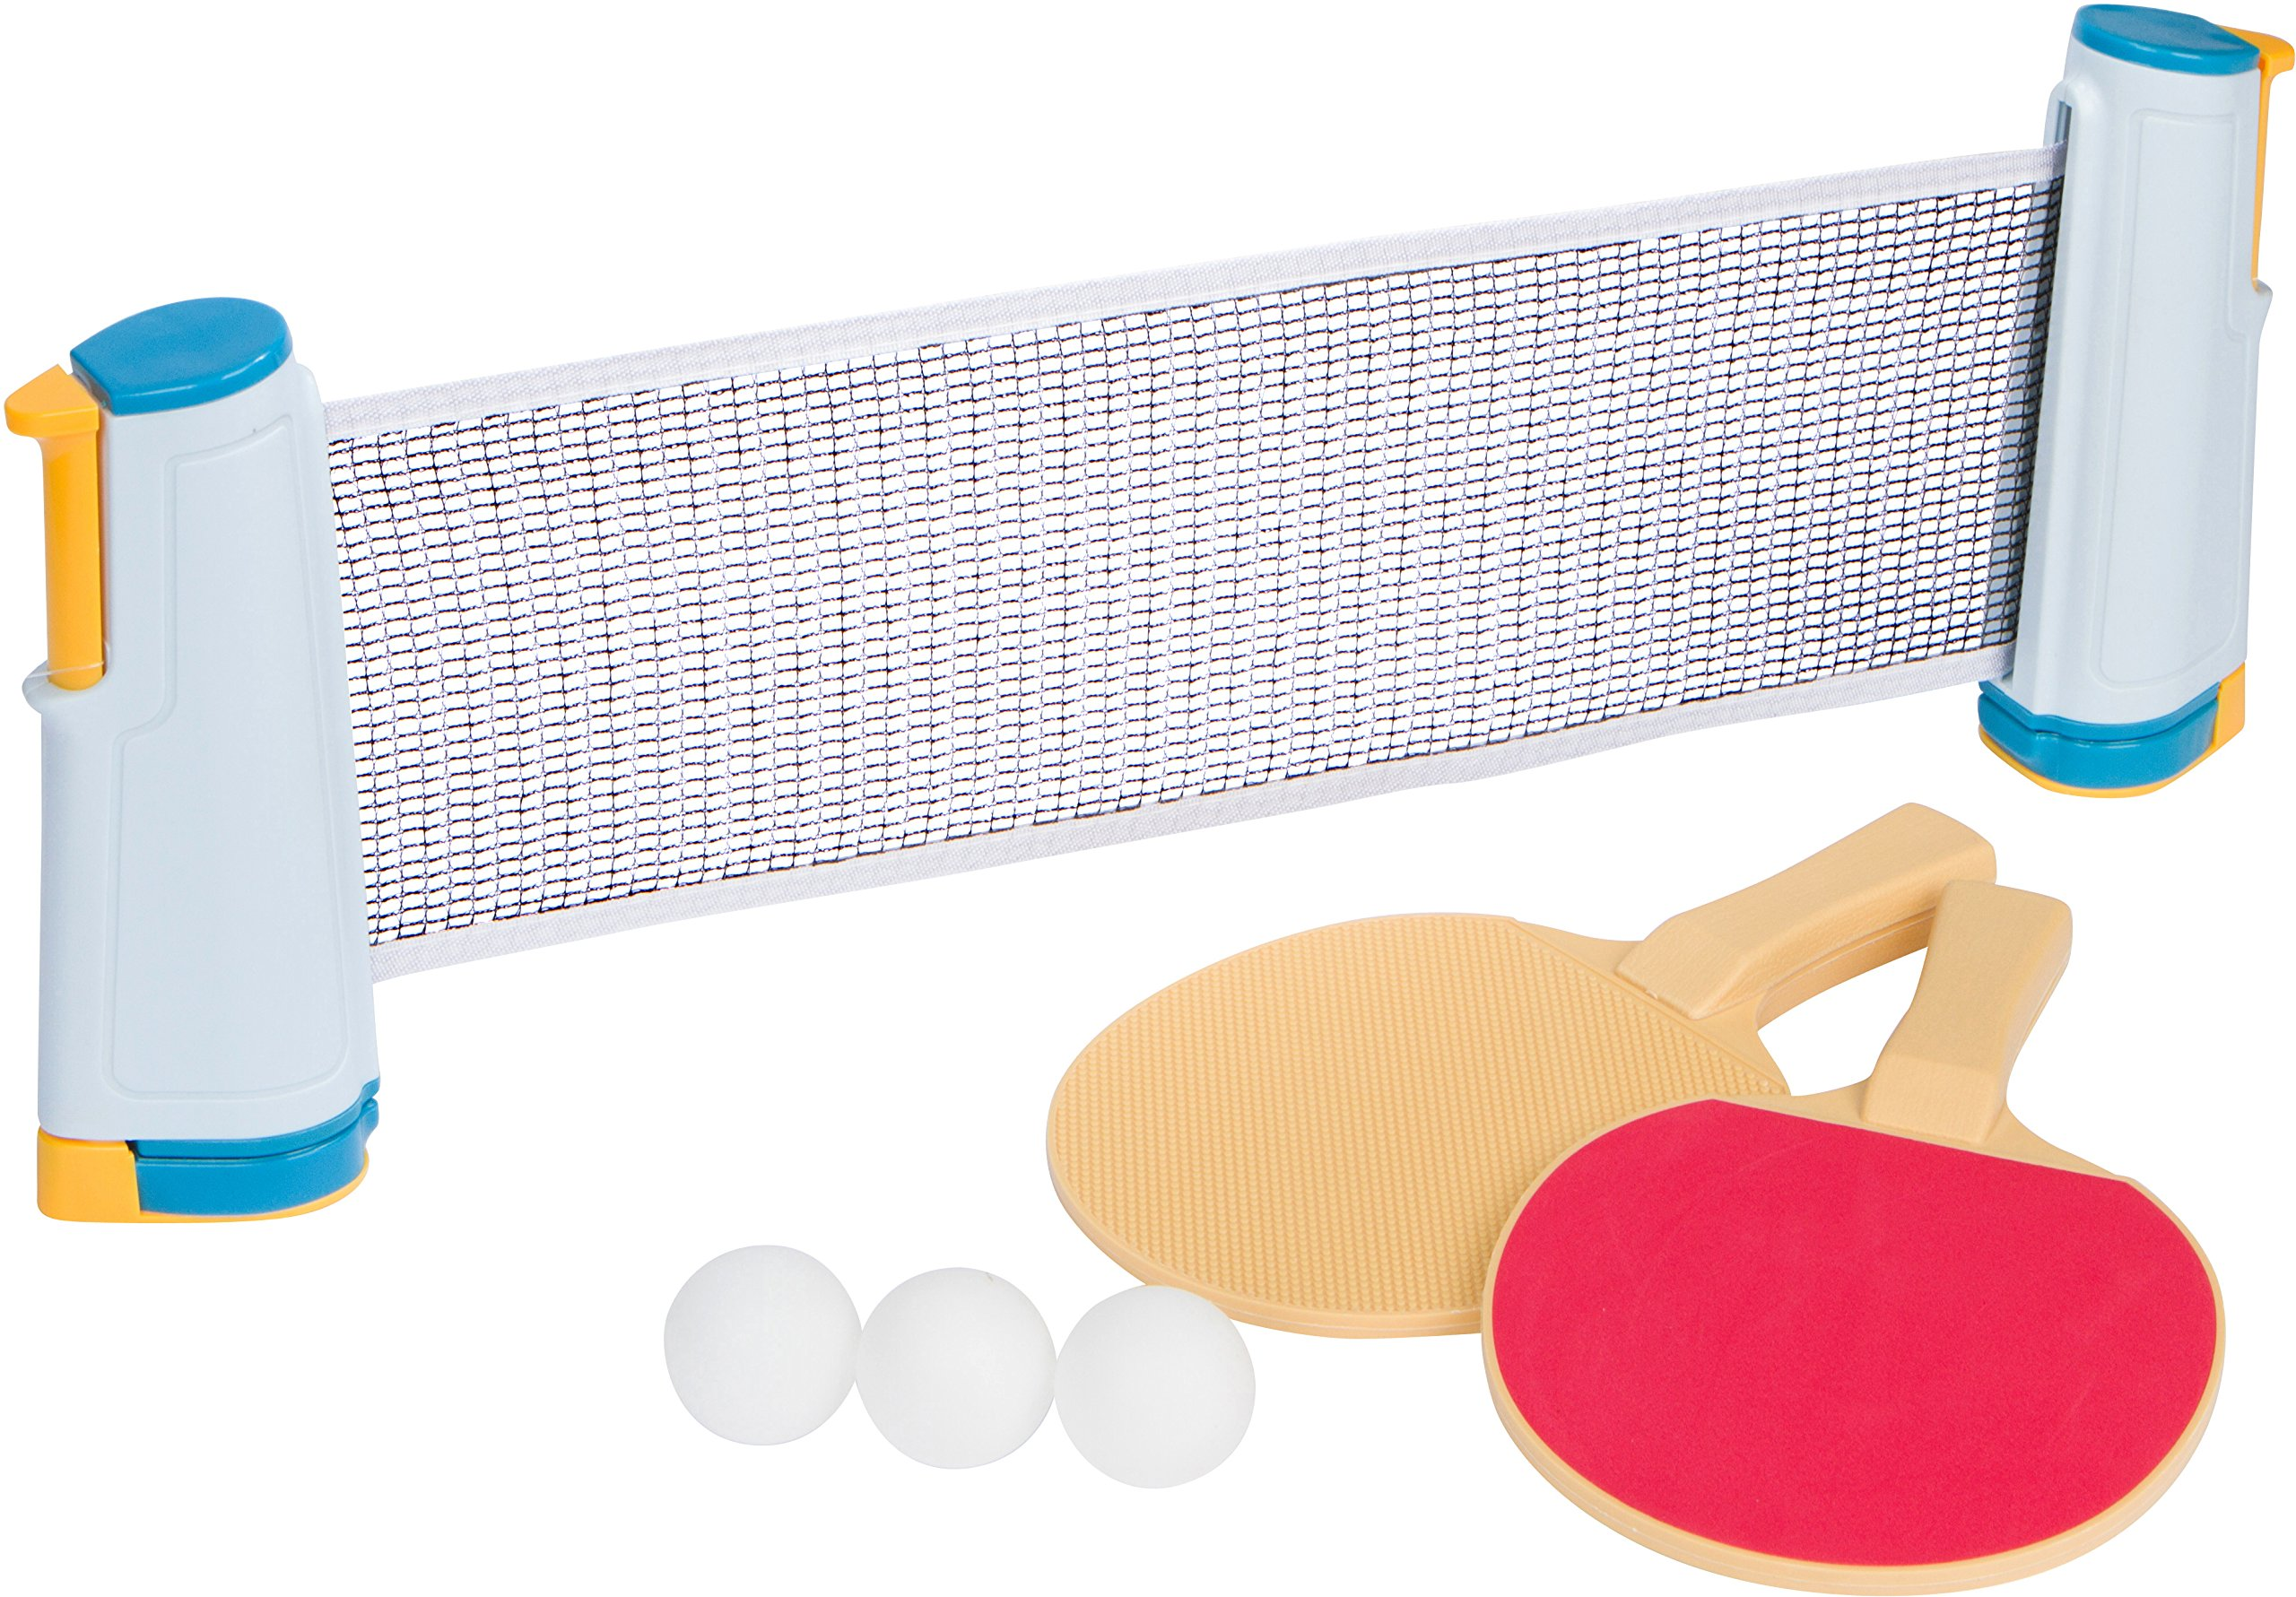 Anywhere Table Tennis Set with Paddles & Balls by Trademark Innovations (Blue and Yellow)